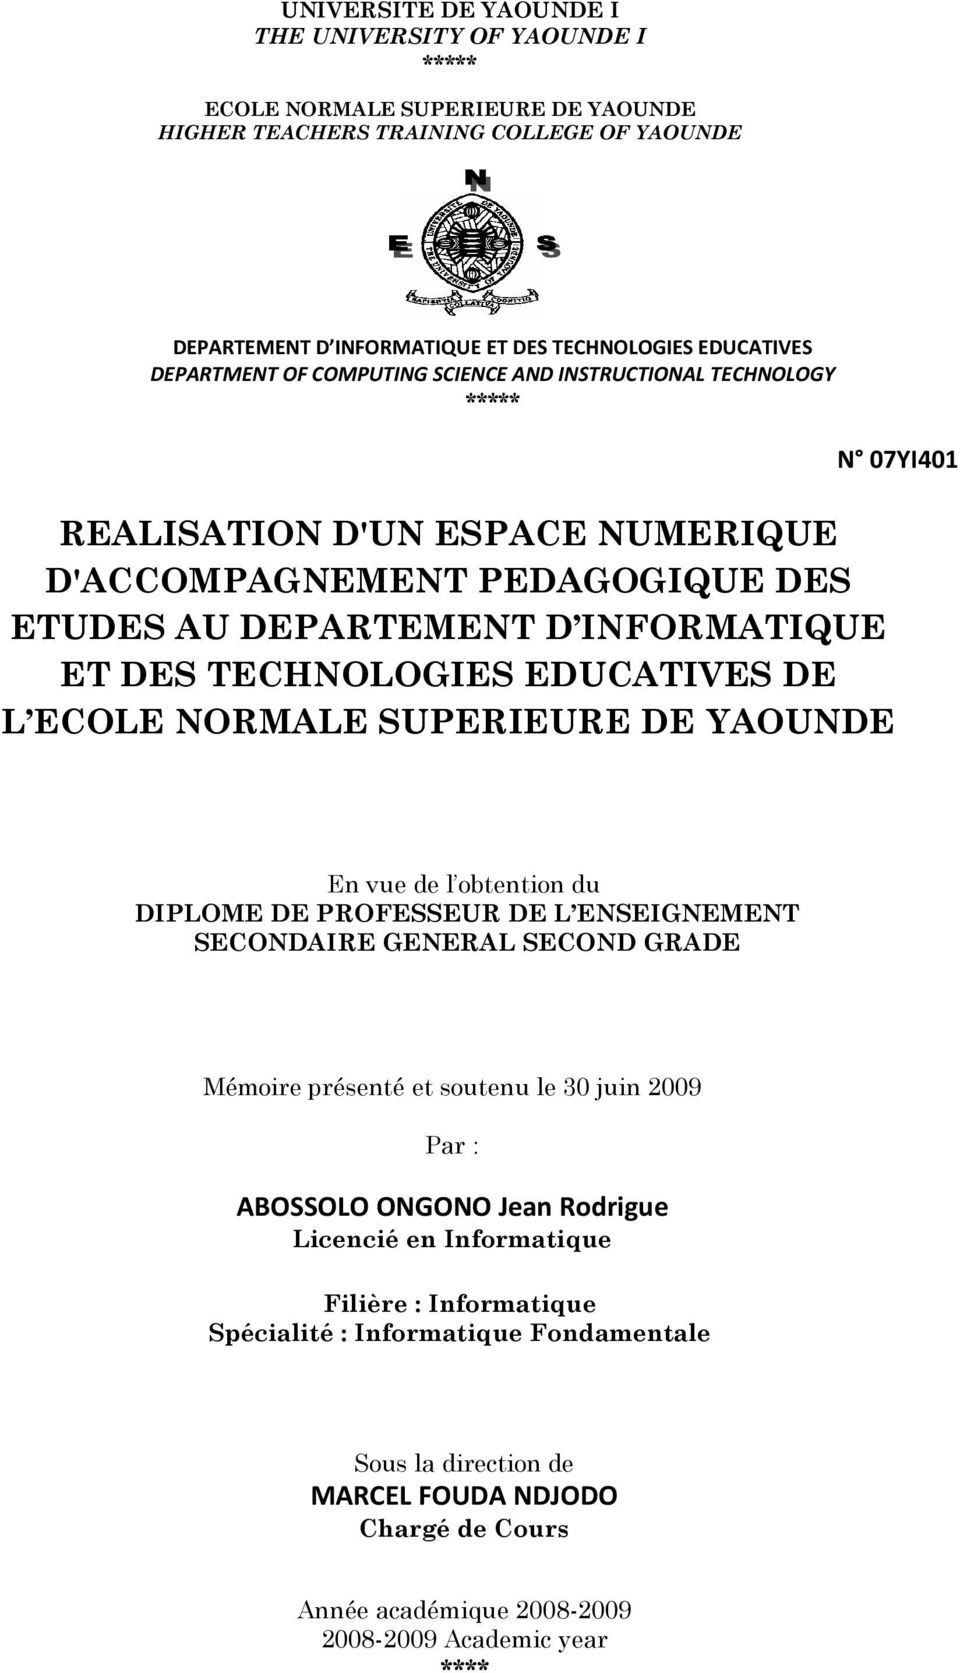 TECHNOLOGIES EDUCATIVES DE L ECOLE NORMALE SUPERIEURE DE YAOUNDE En vue de l obtention du DIPLOME DE PROFESSEUR DE L ENSEIGNEMENT SECONDAIRE GENERAL SECOND GRADE Mémoire présenté et soutenu le 30